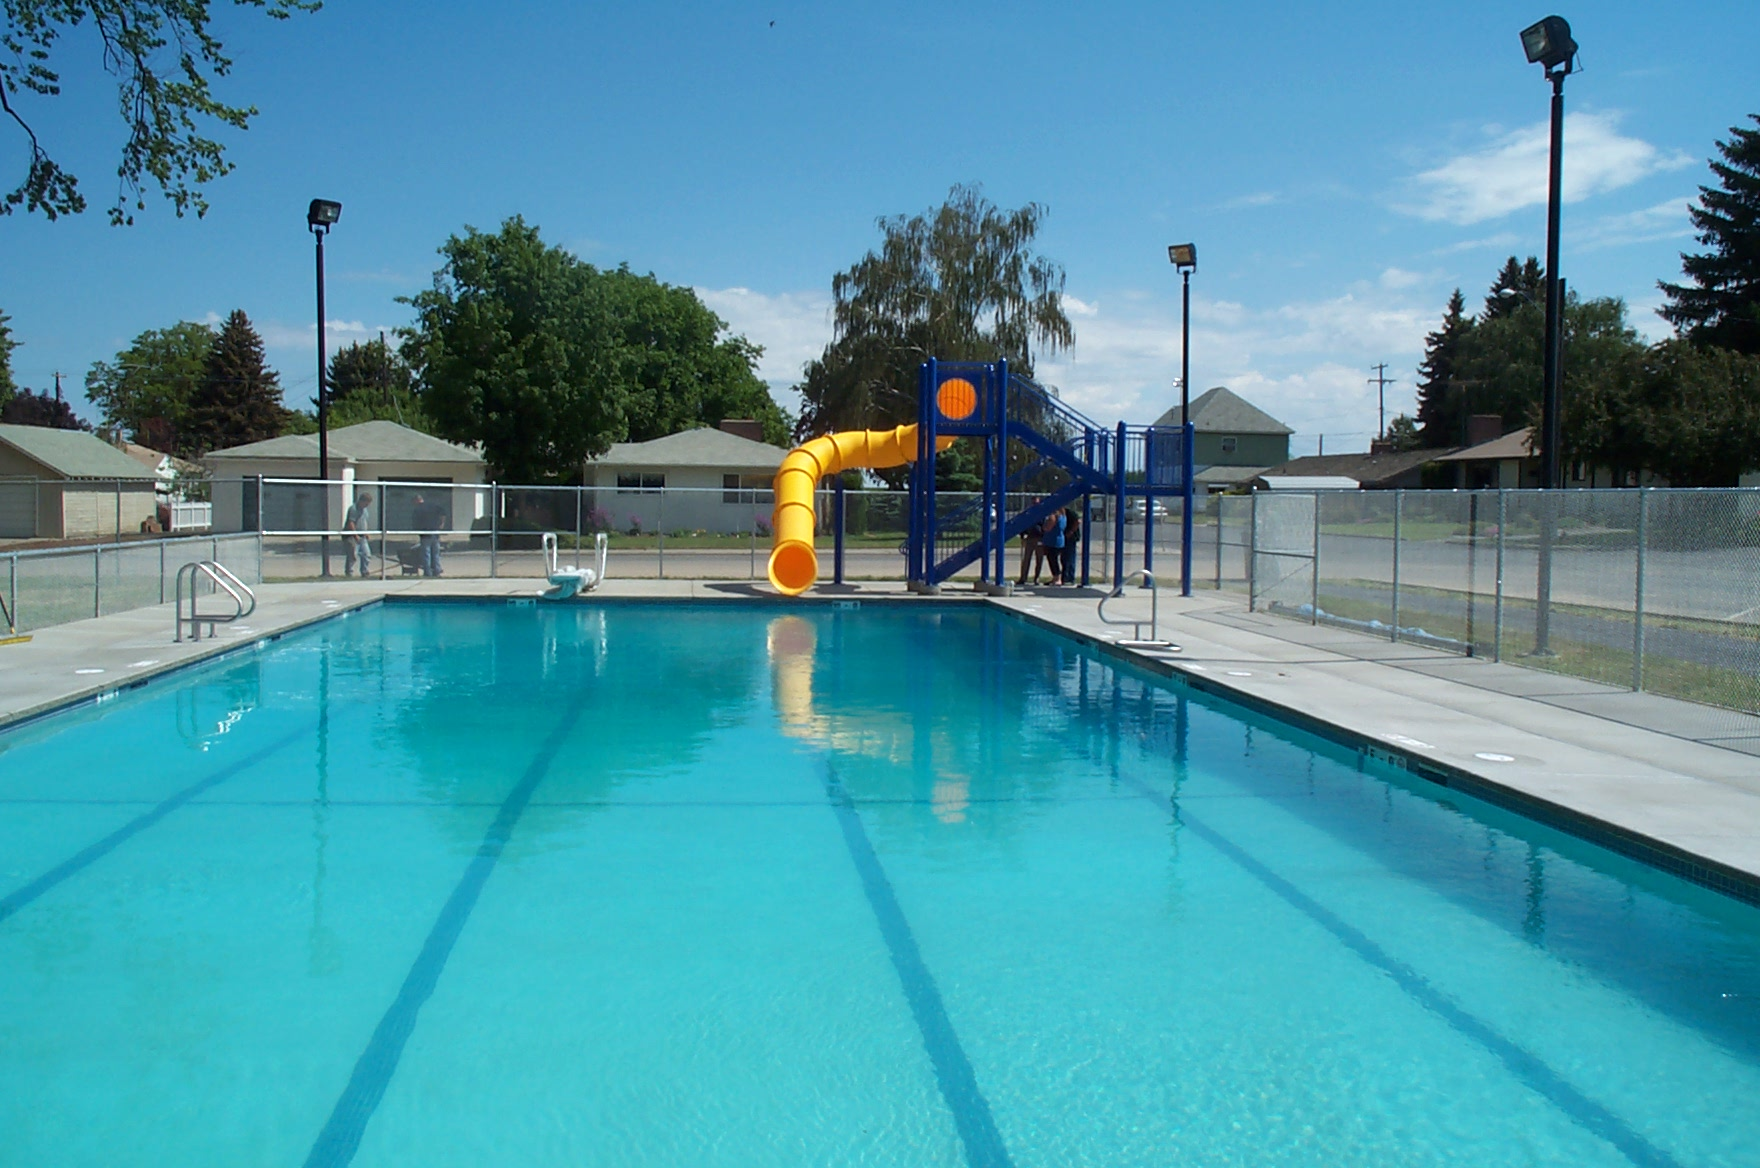 Pool world commercial pools in the spokane and coeur d for Garden city swimming pool